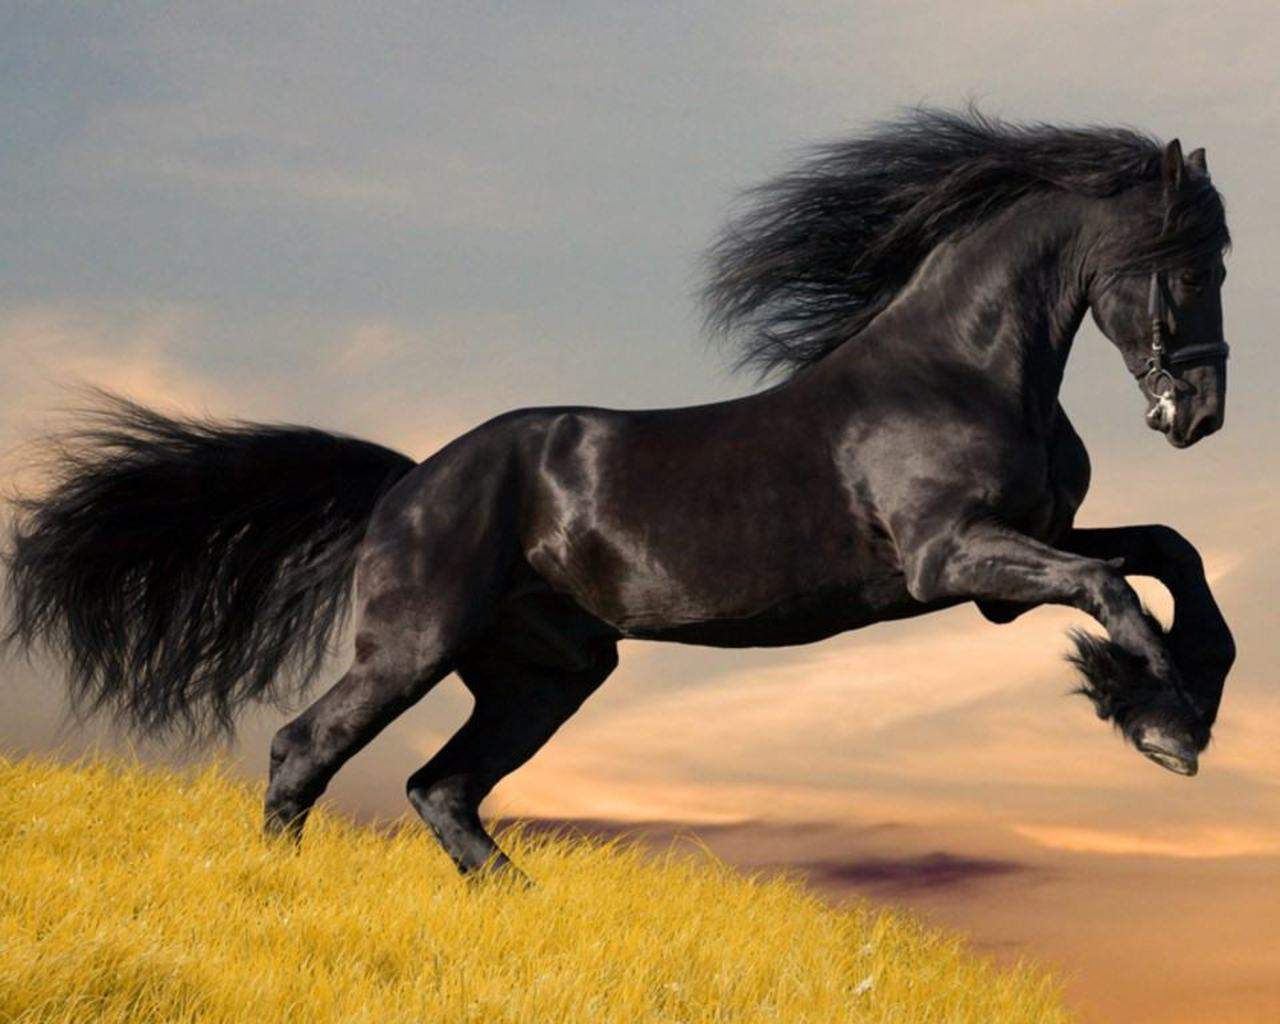 Amazing   Wallpaper Horse Nature - Horse%2BPictures%2B4  Collection_46378.jpg